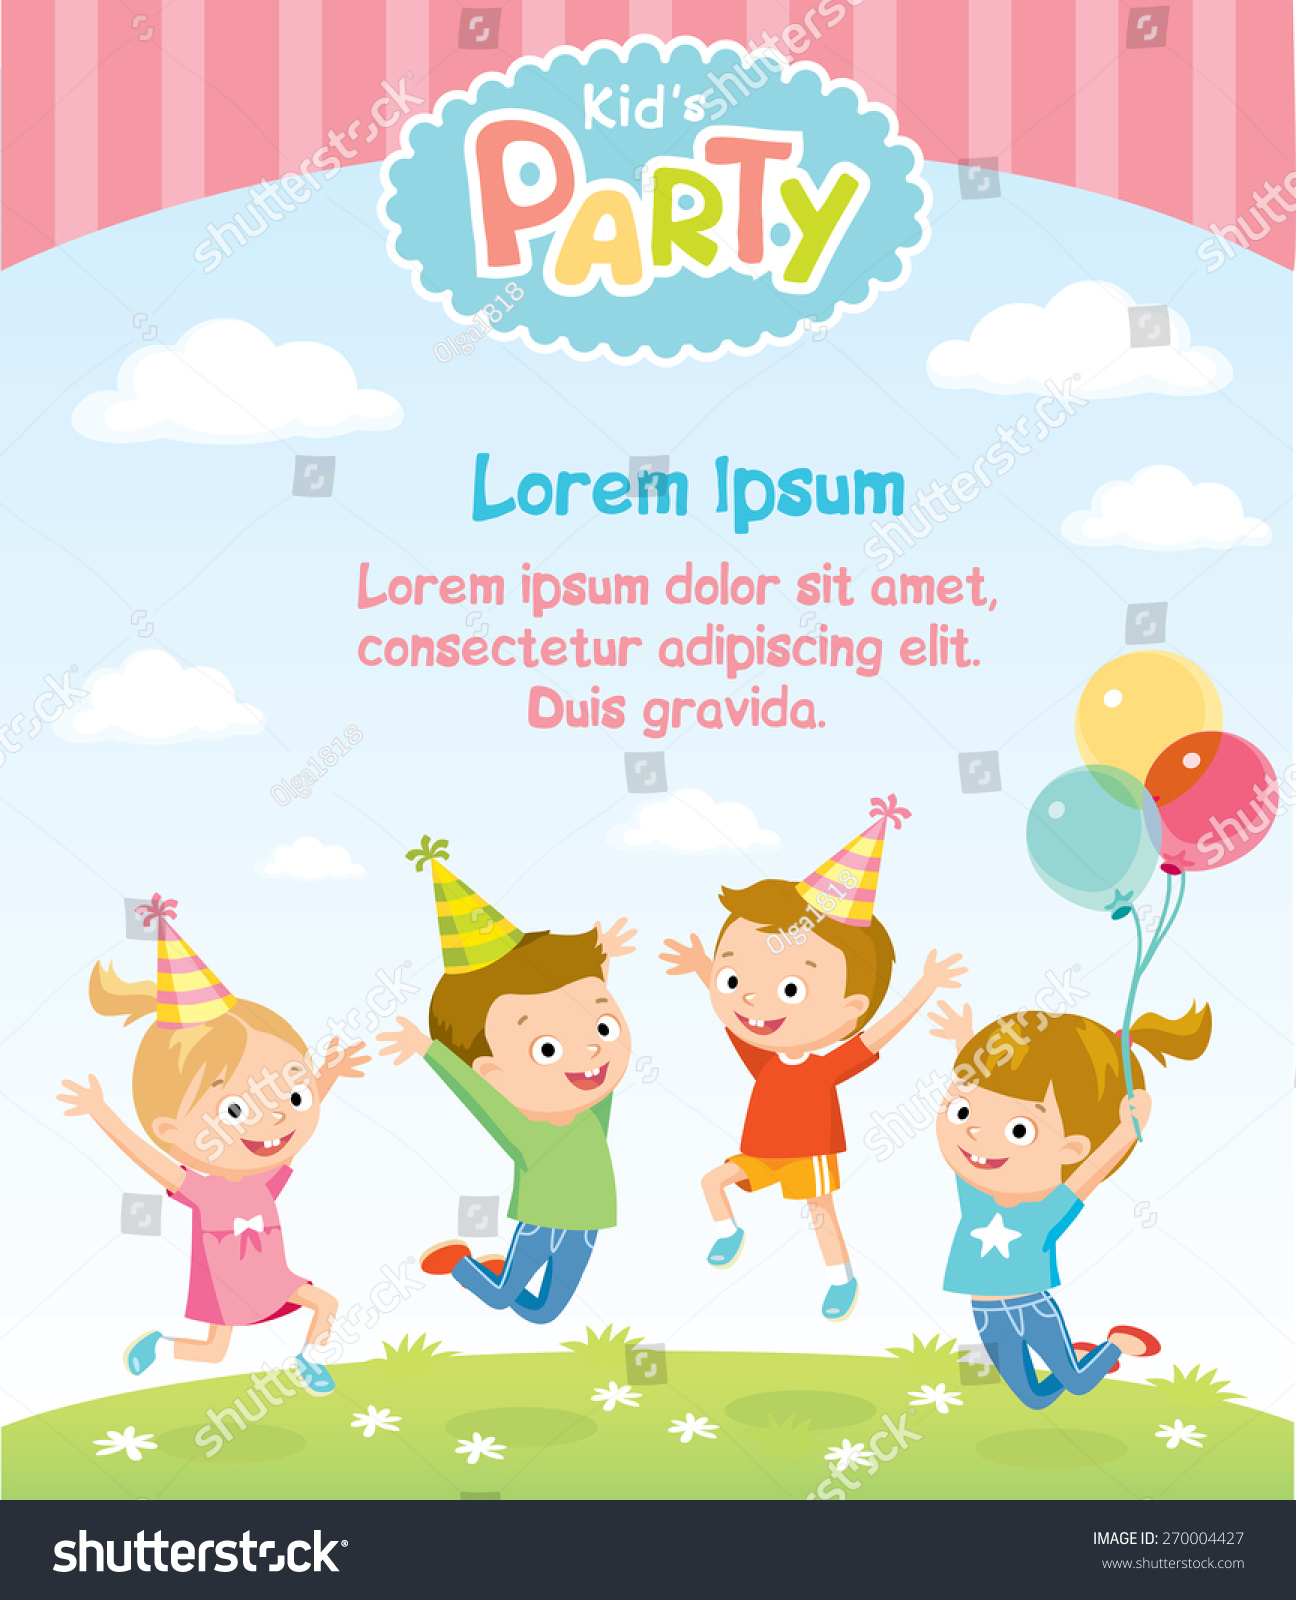 Childrens Party Invitation Jumping Kids Stock Vector HD (Royalty ...